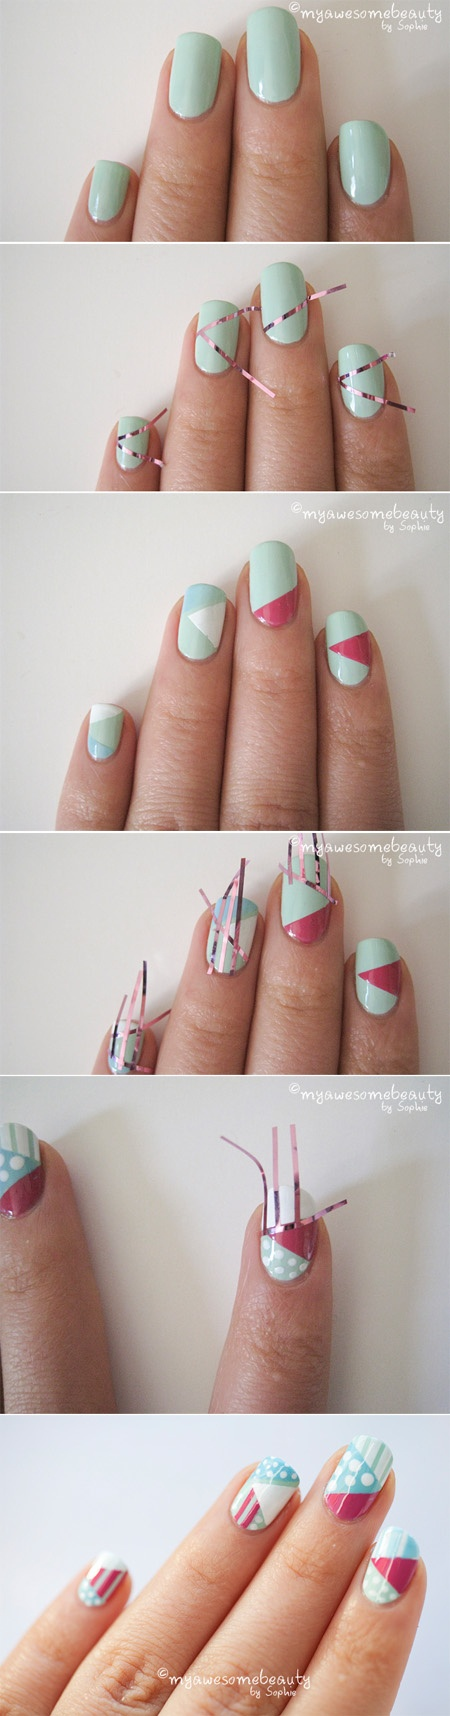 diy-nails-style motivation (24)